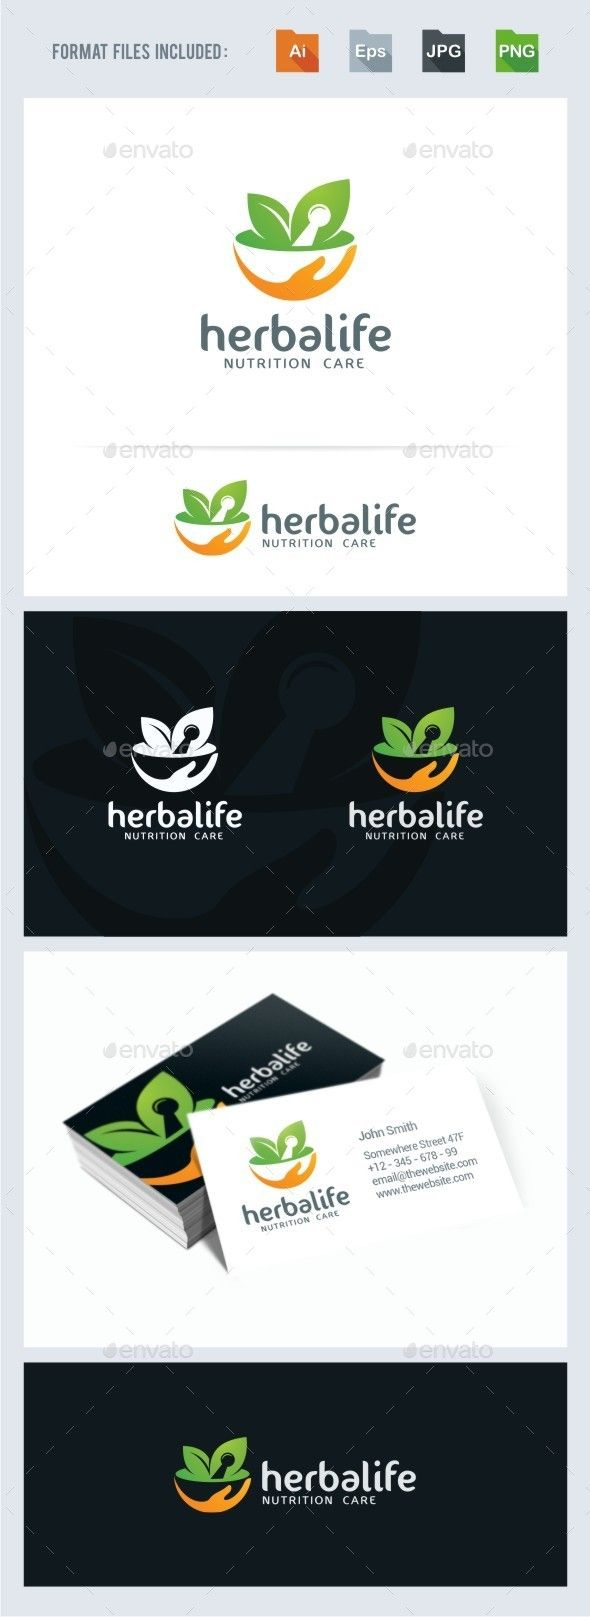 Herbal Nutrition - Logo Design Template Vector #logotype Download it here: http://graphicriver.net/item/herbal-nutrition-logo-template/11325337?s_rank=912?ref=nexion